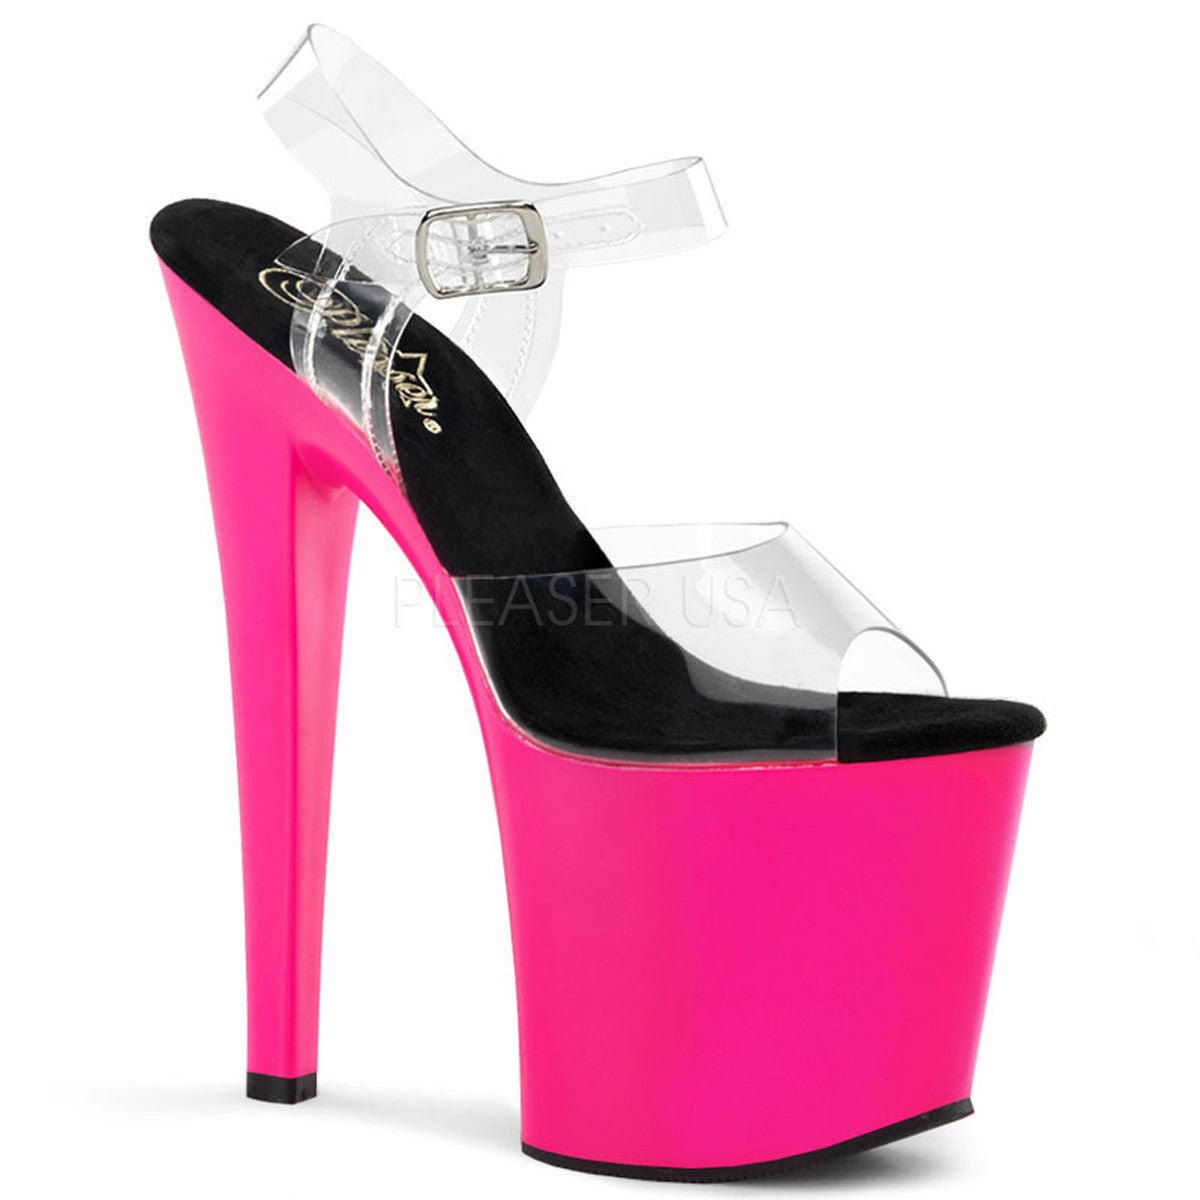 PLEASER TABOO-708UV Clear-Neon Pink Ankle Strap Sandals - Shoecup.com